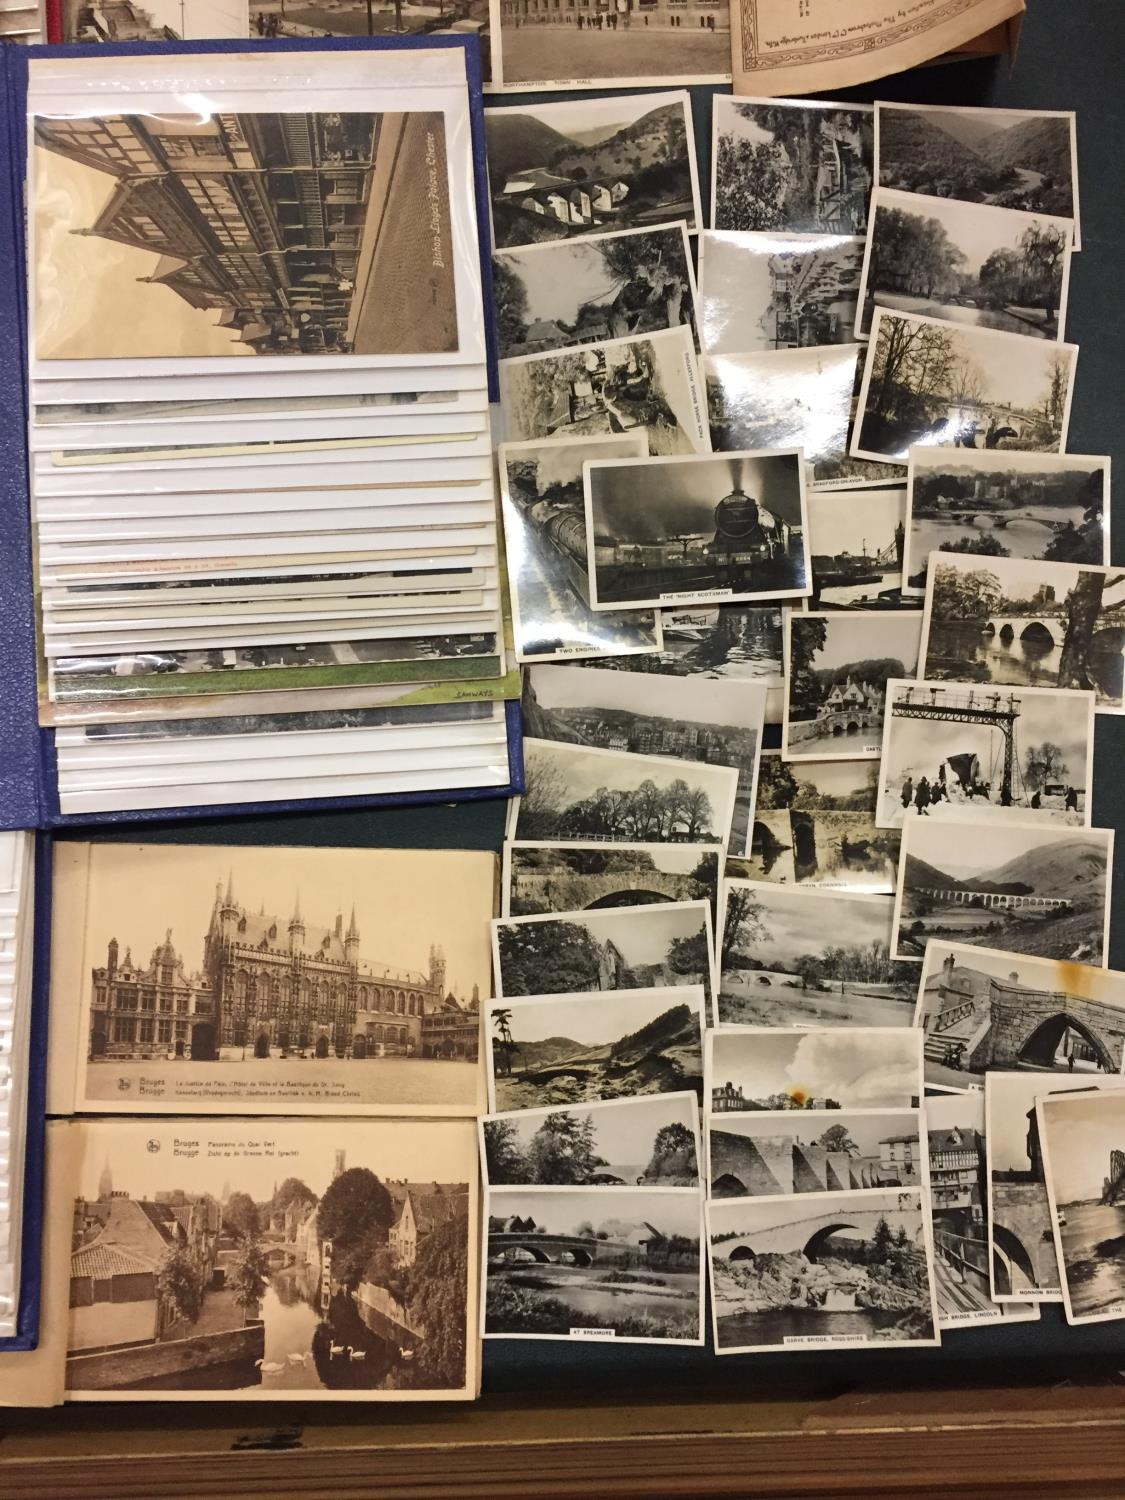 A LARGE COLLECTION OF 550+ ANTIQUE AND VINTAGE POSTCARDS RANGING FROM 1908-1970'S. MAINLEY UK - SOME - Image 12 of 14